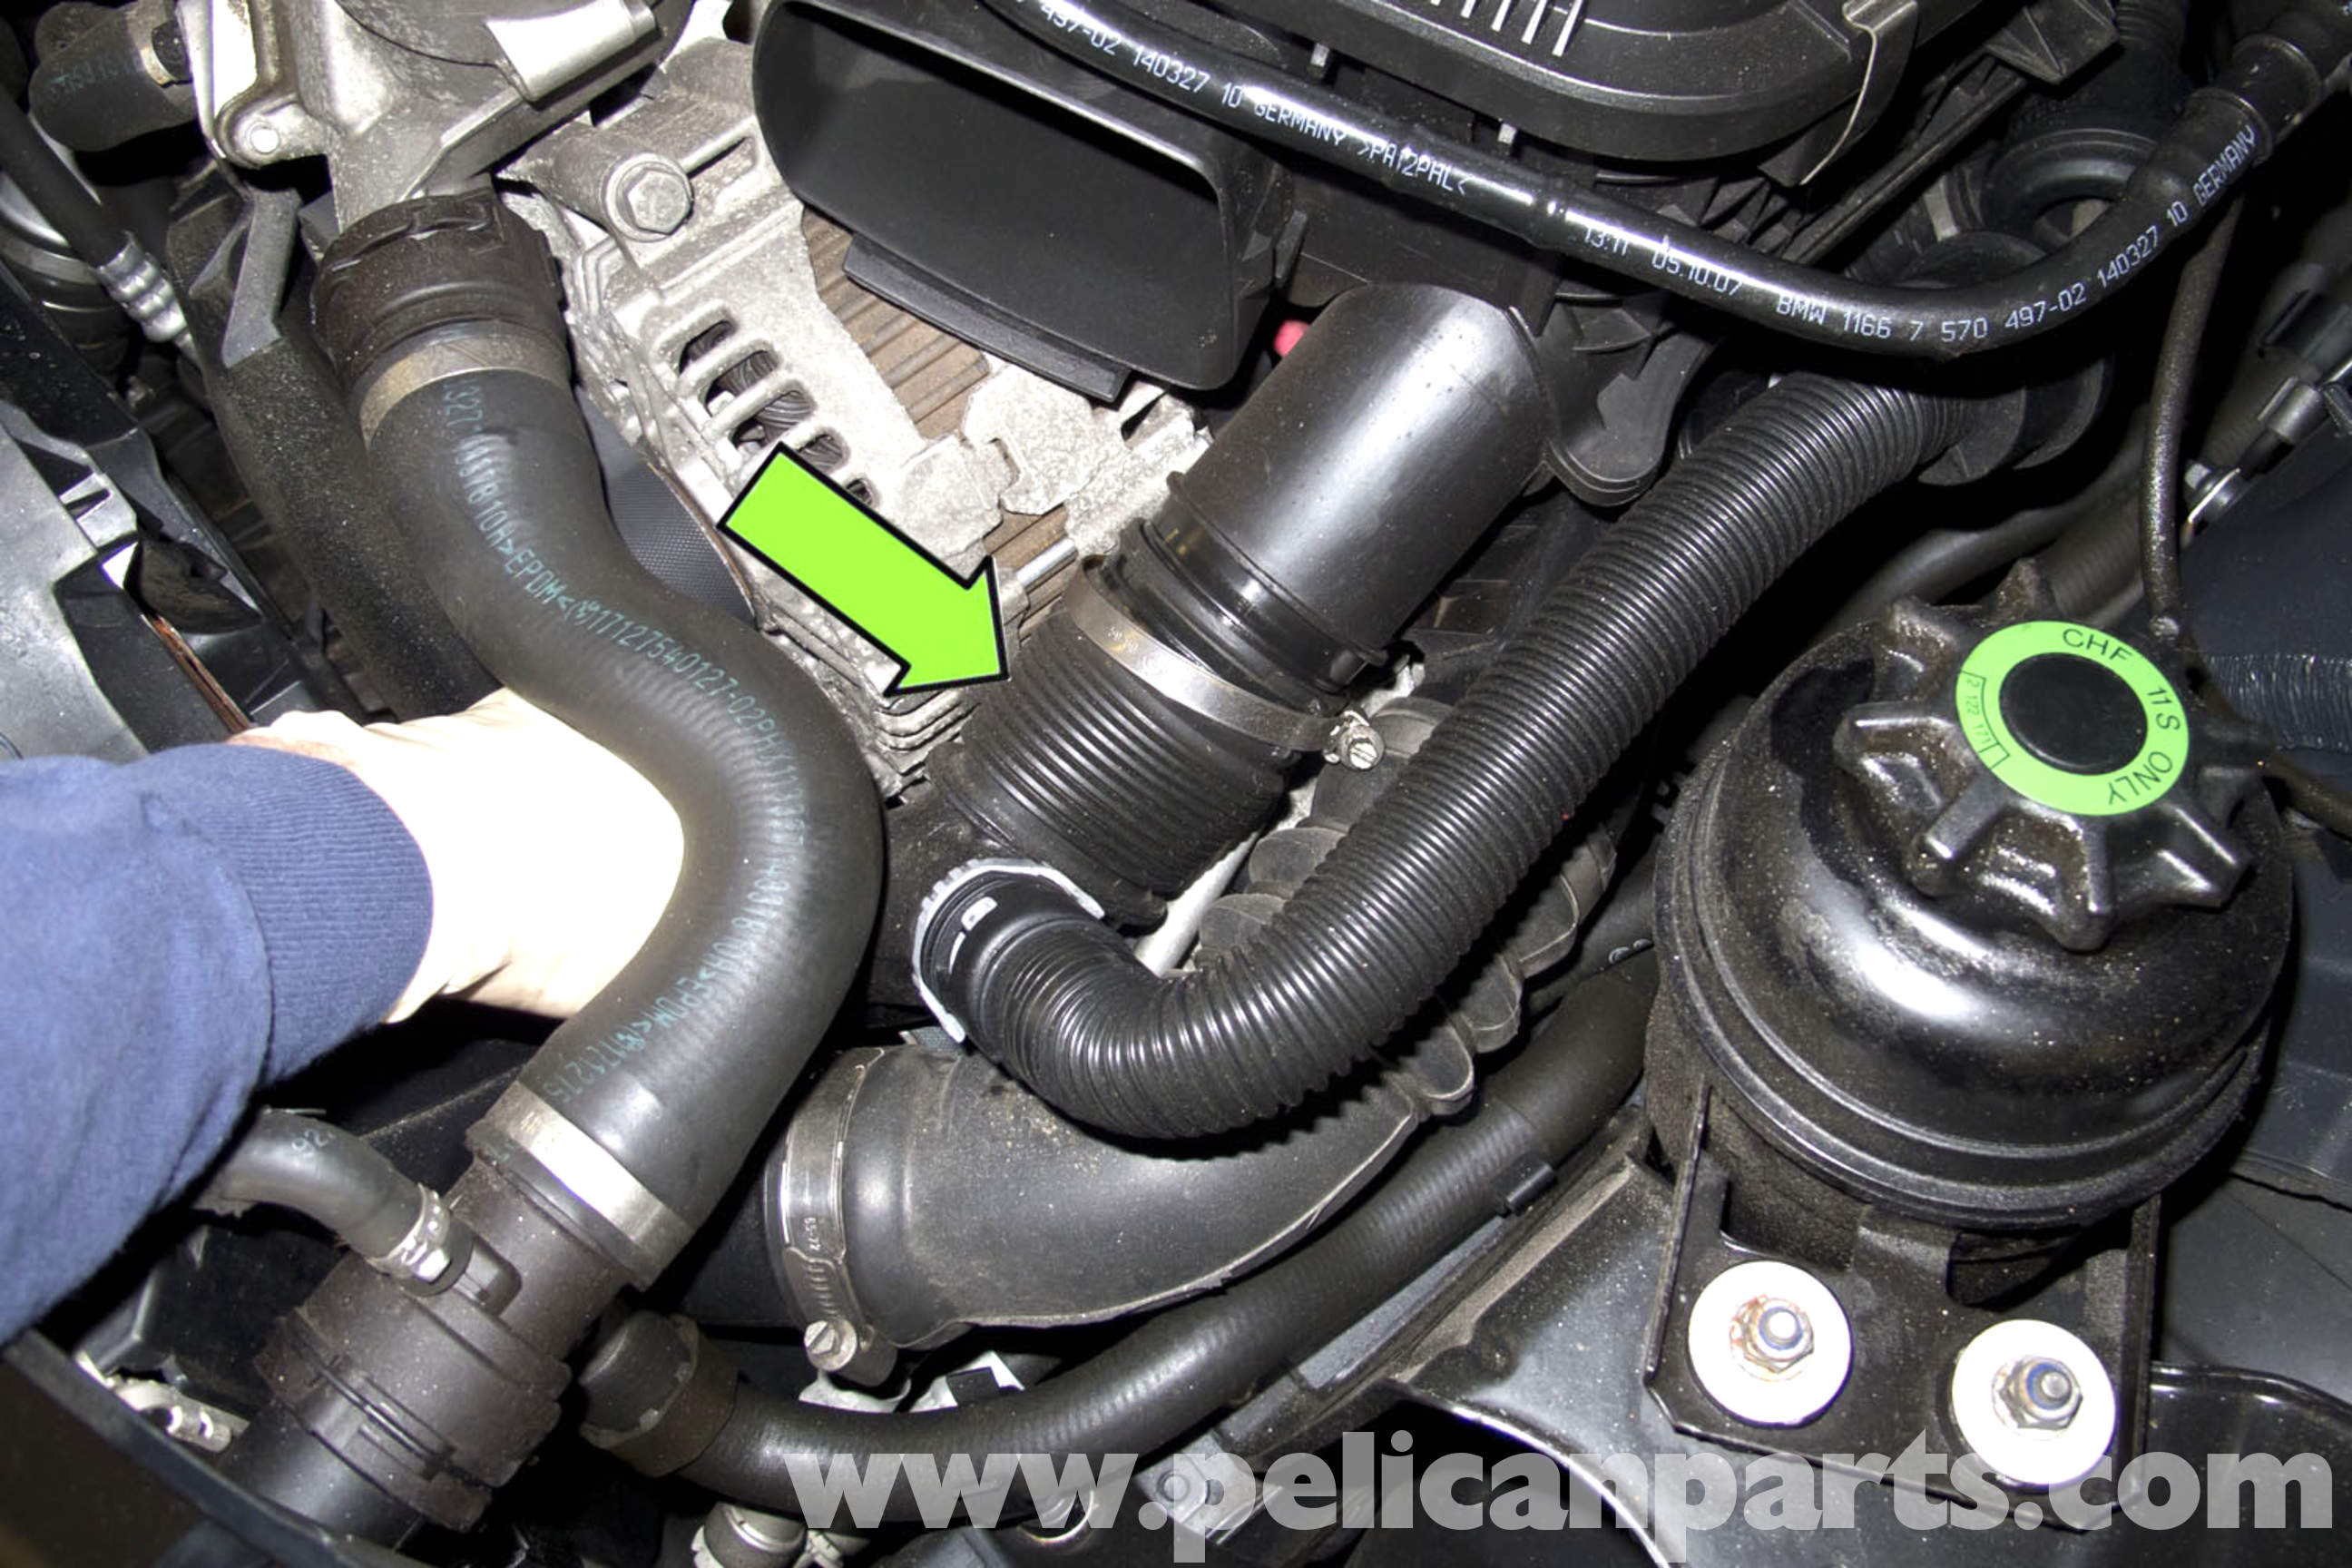 pic18 bmw e90 knock sensor replacement e91, e92, e93 pelican parts BMW E90 Music-Diagram at bayanpartner.co